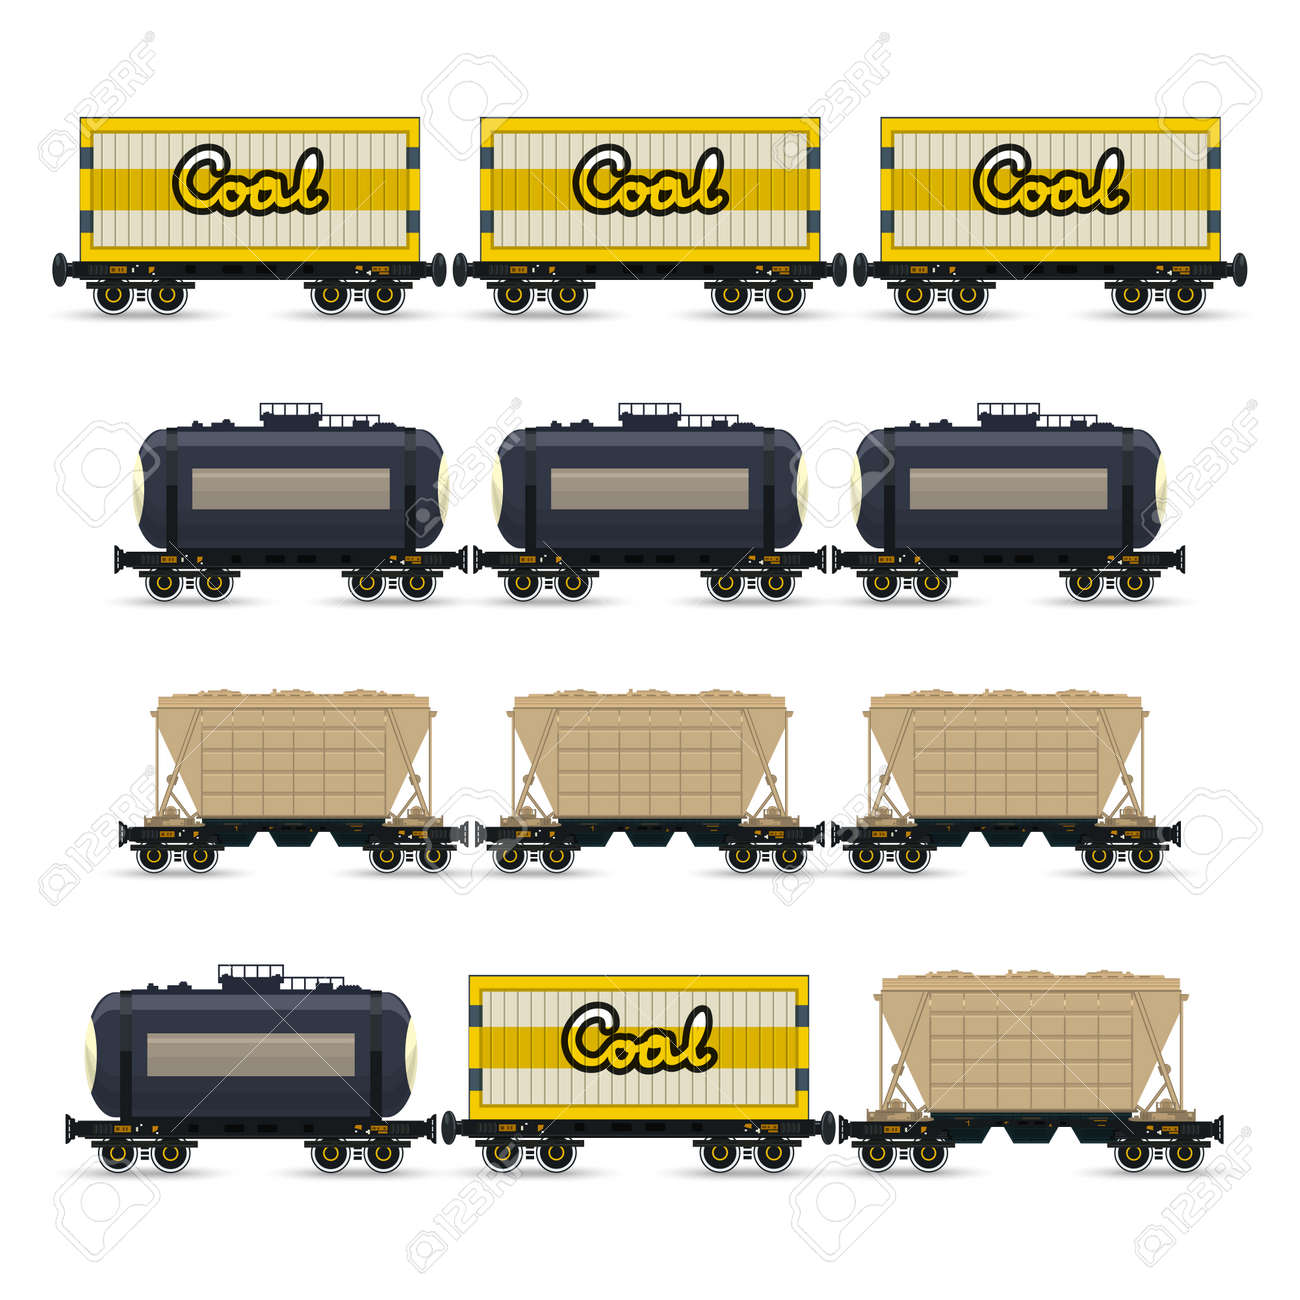 Freight Train Car Types